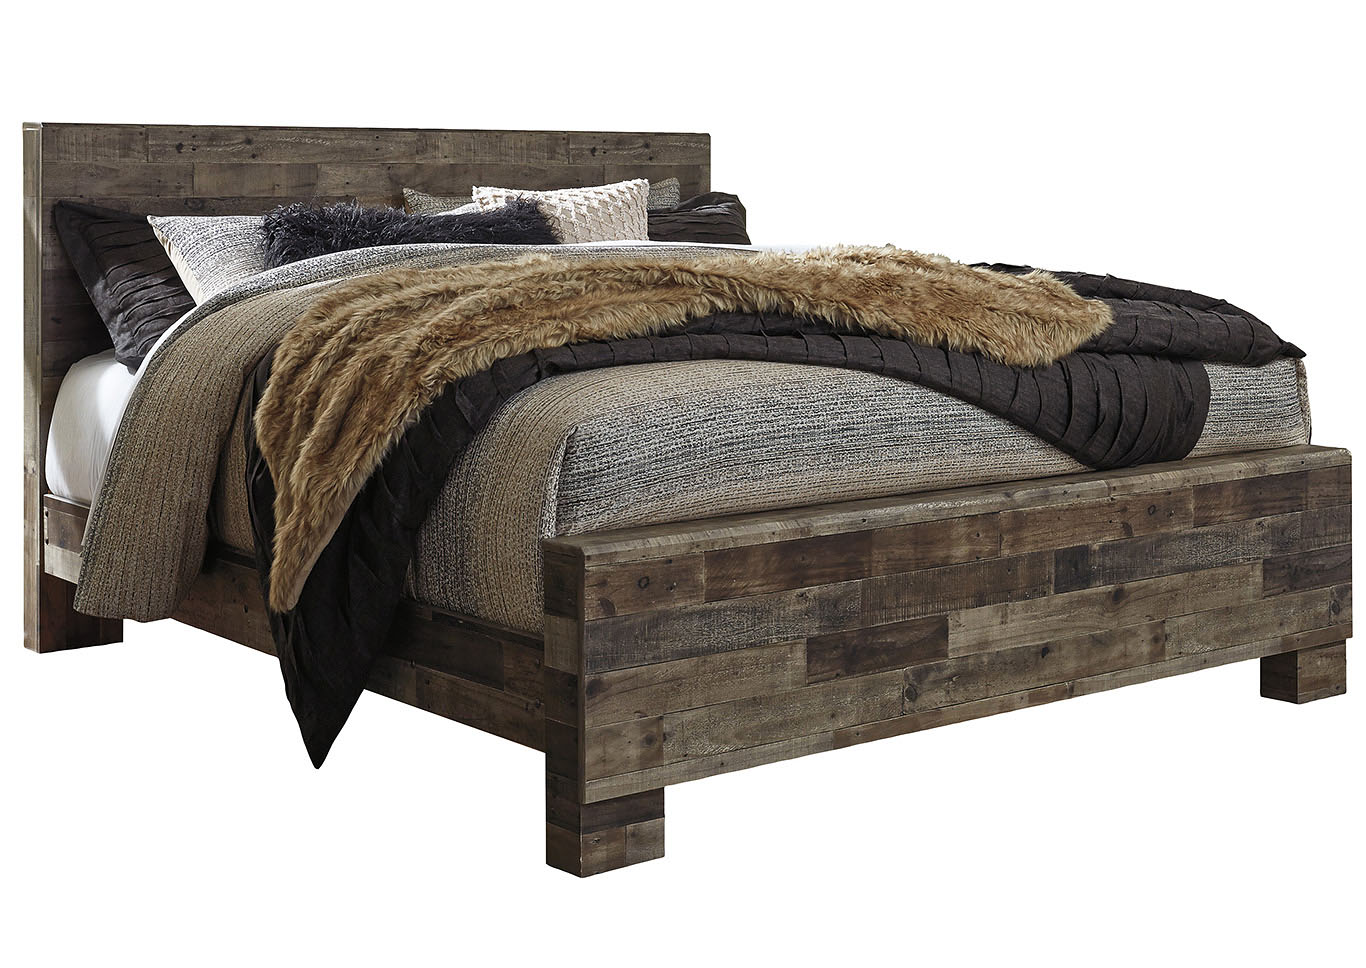 Derekson Multi Gray King Panel Bed,Benchcraft